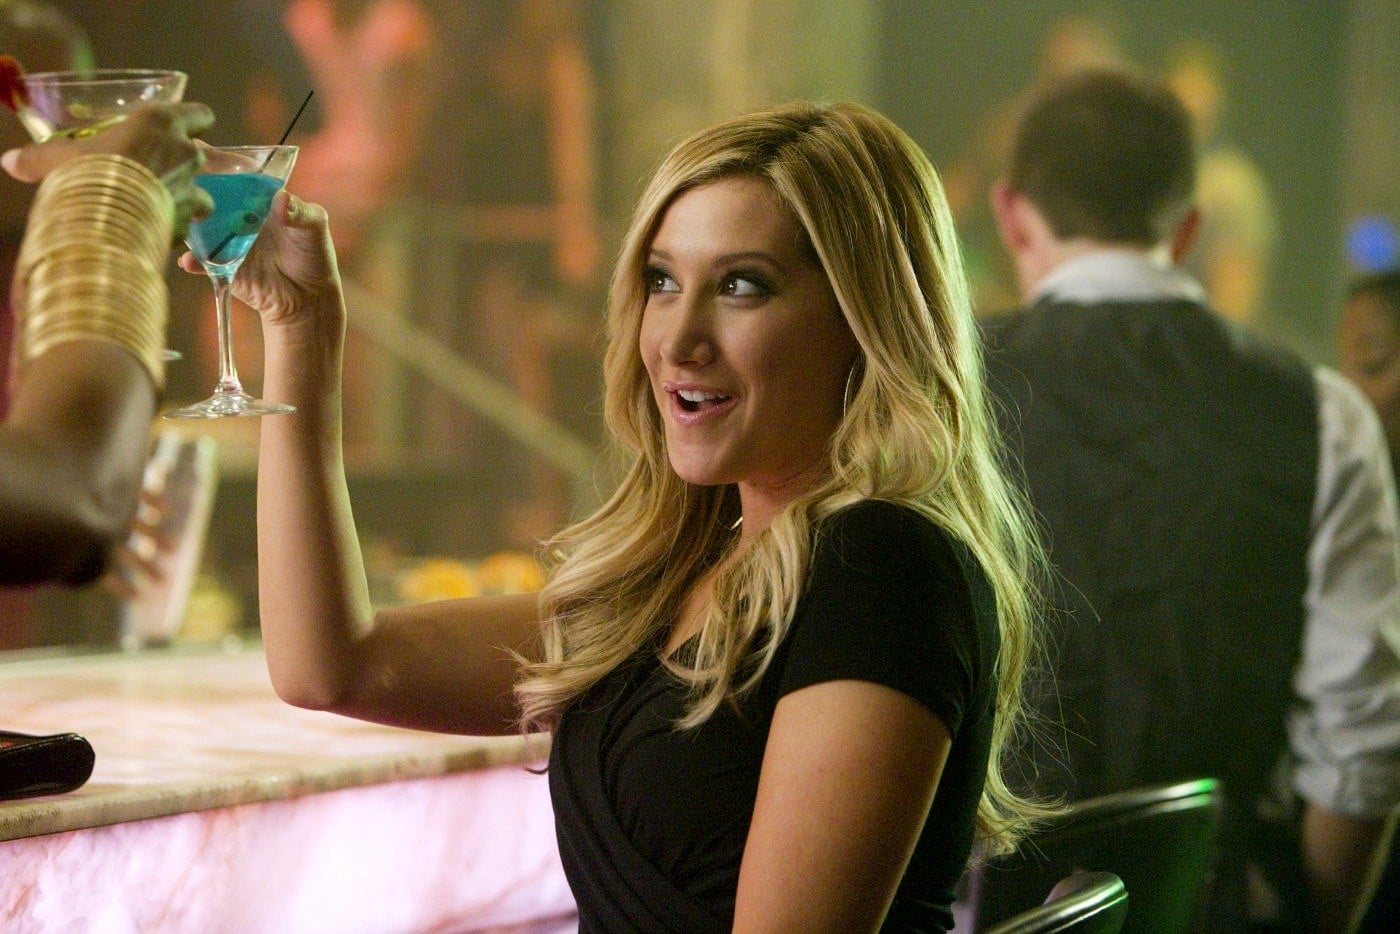 Scary Movie 5 The Newest Movies And Tv Shows On Netflix In February Popsugar Entertainment Photo 11